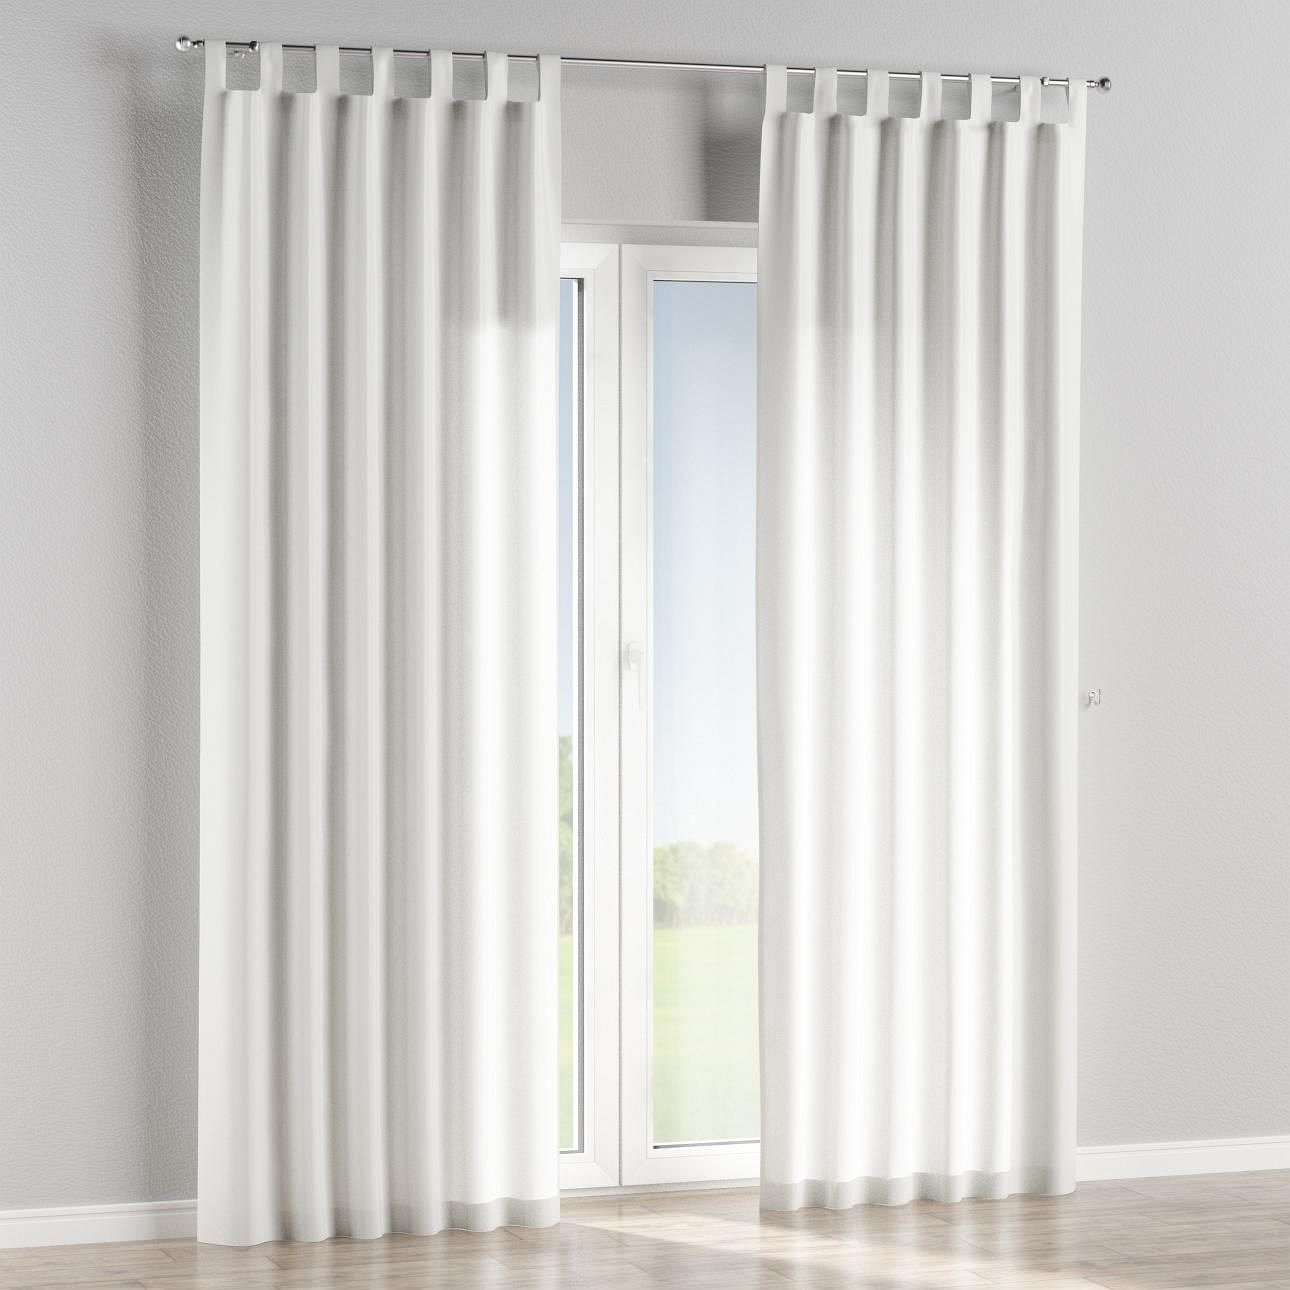 Tab top curtains in collection Victoria, fabric: 130-09